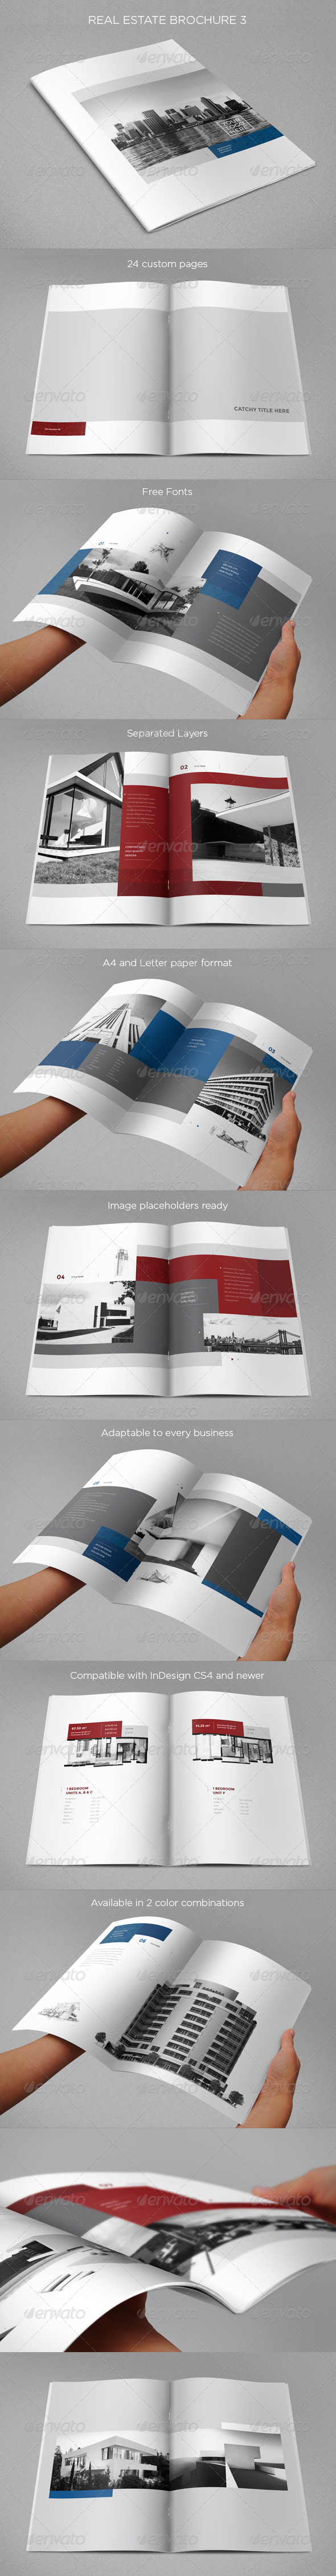 GraphicRiver Real Estate Brochure 3 8466289